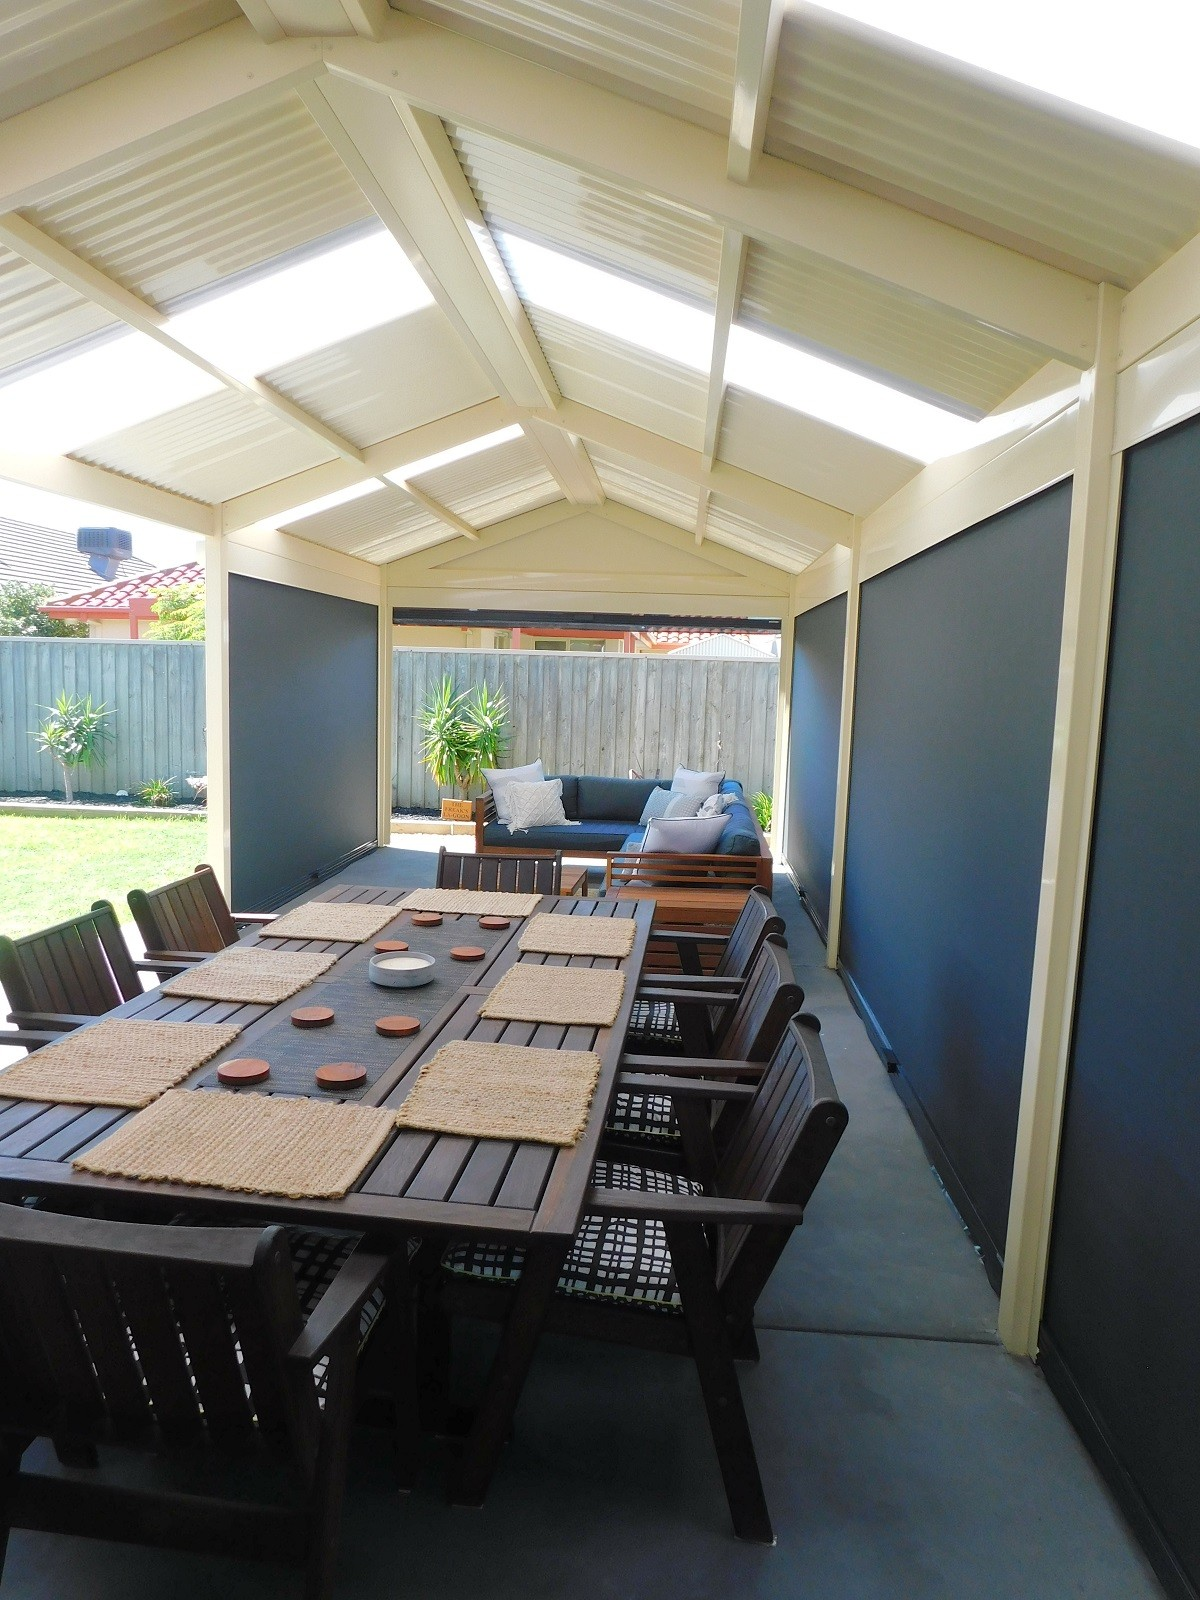 Top Tips for Choosing Outdoor Blinds for Your Home